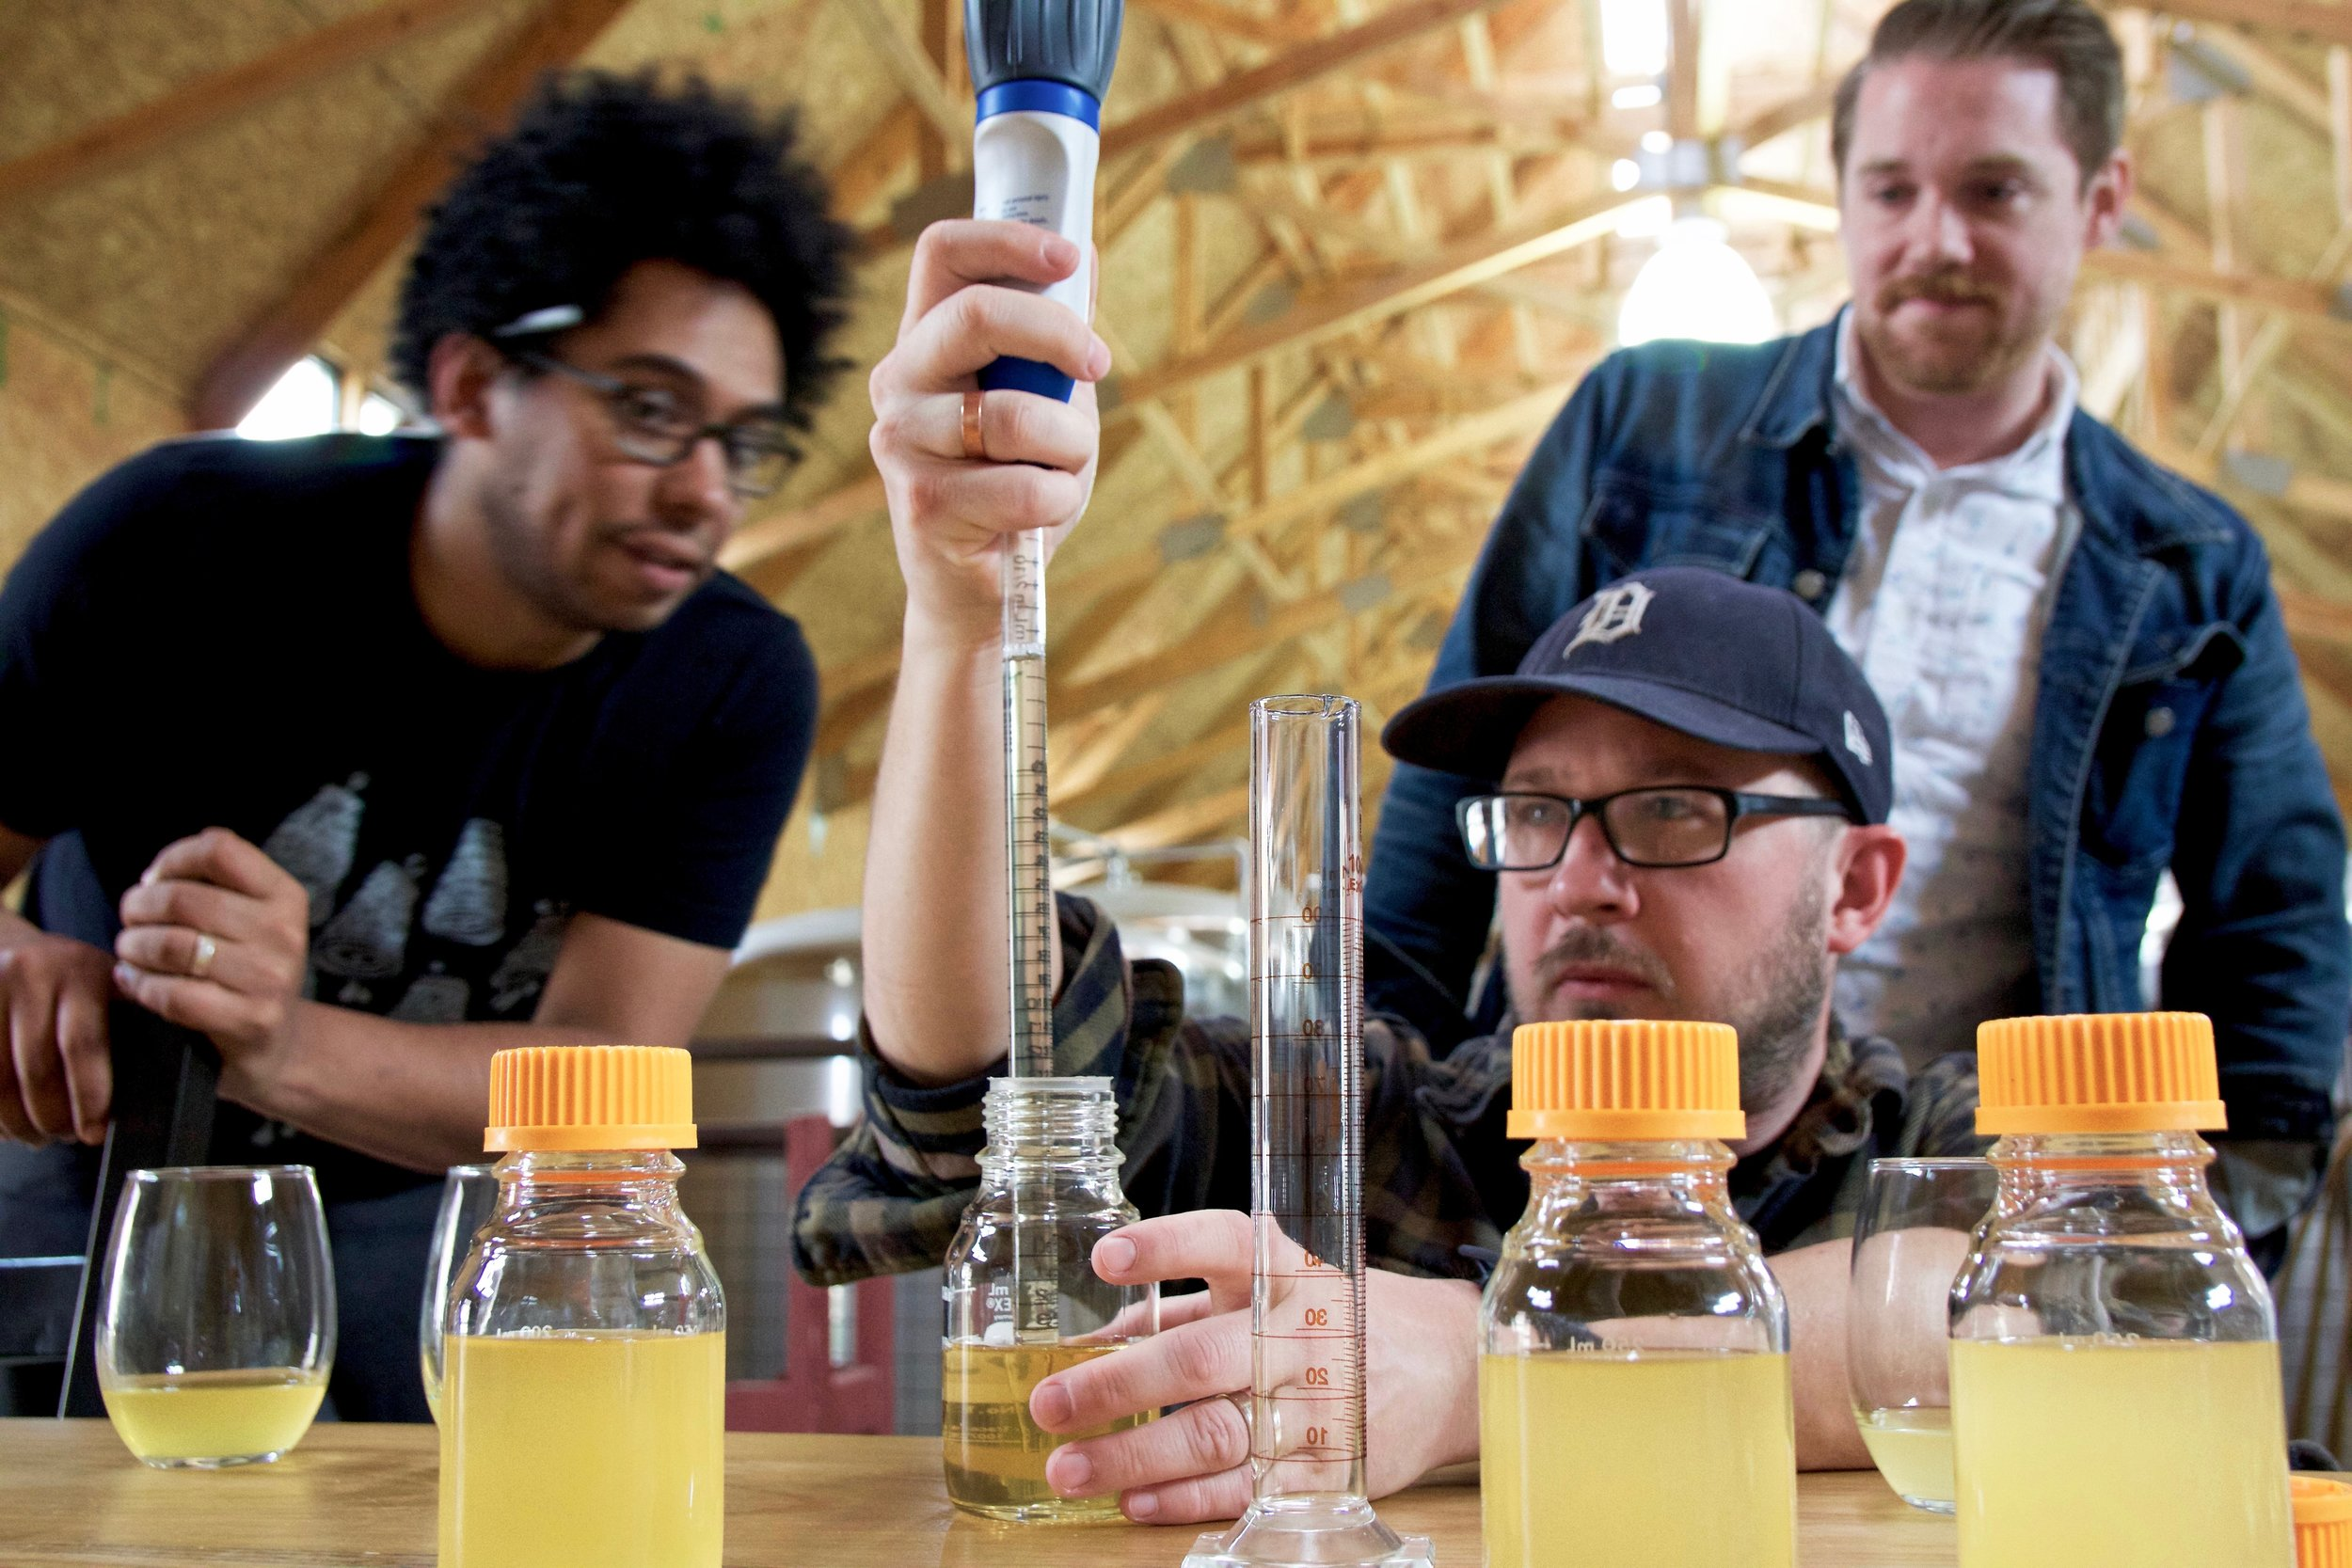 Seth pulls cider from a sample bottle to blend the right ratio of flavors for Garage Core.